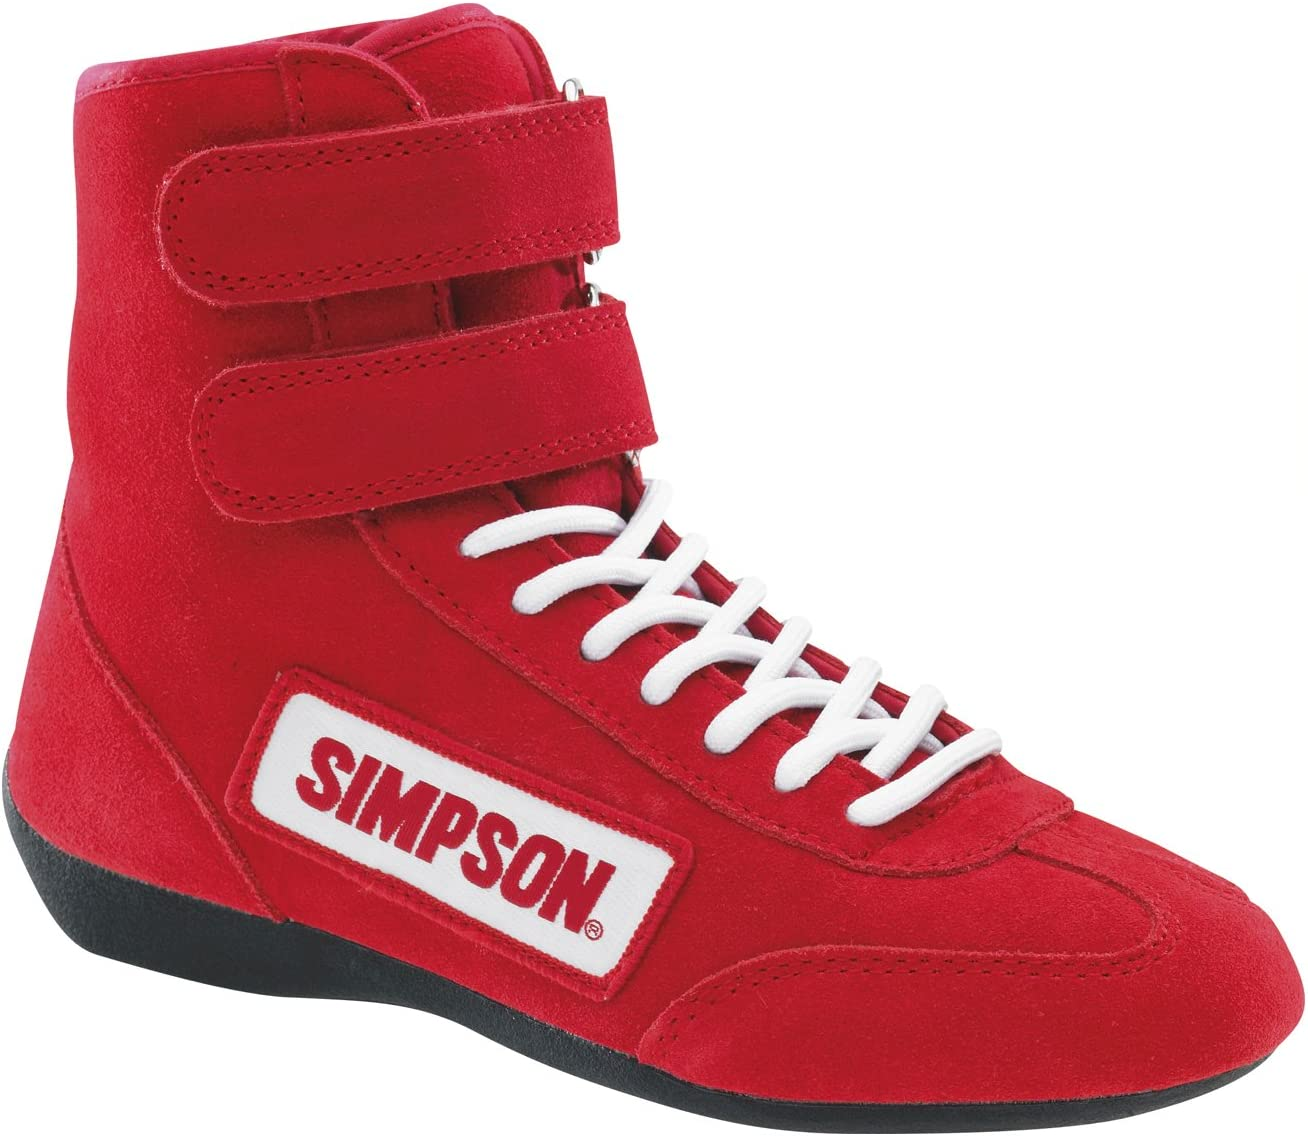 Simpson Racing 28900BL The Hightop Blue Size 9 SFI Approved Driving Shoes